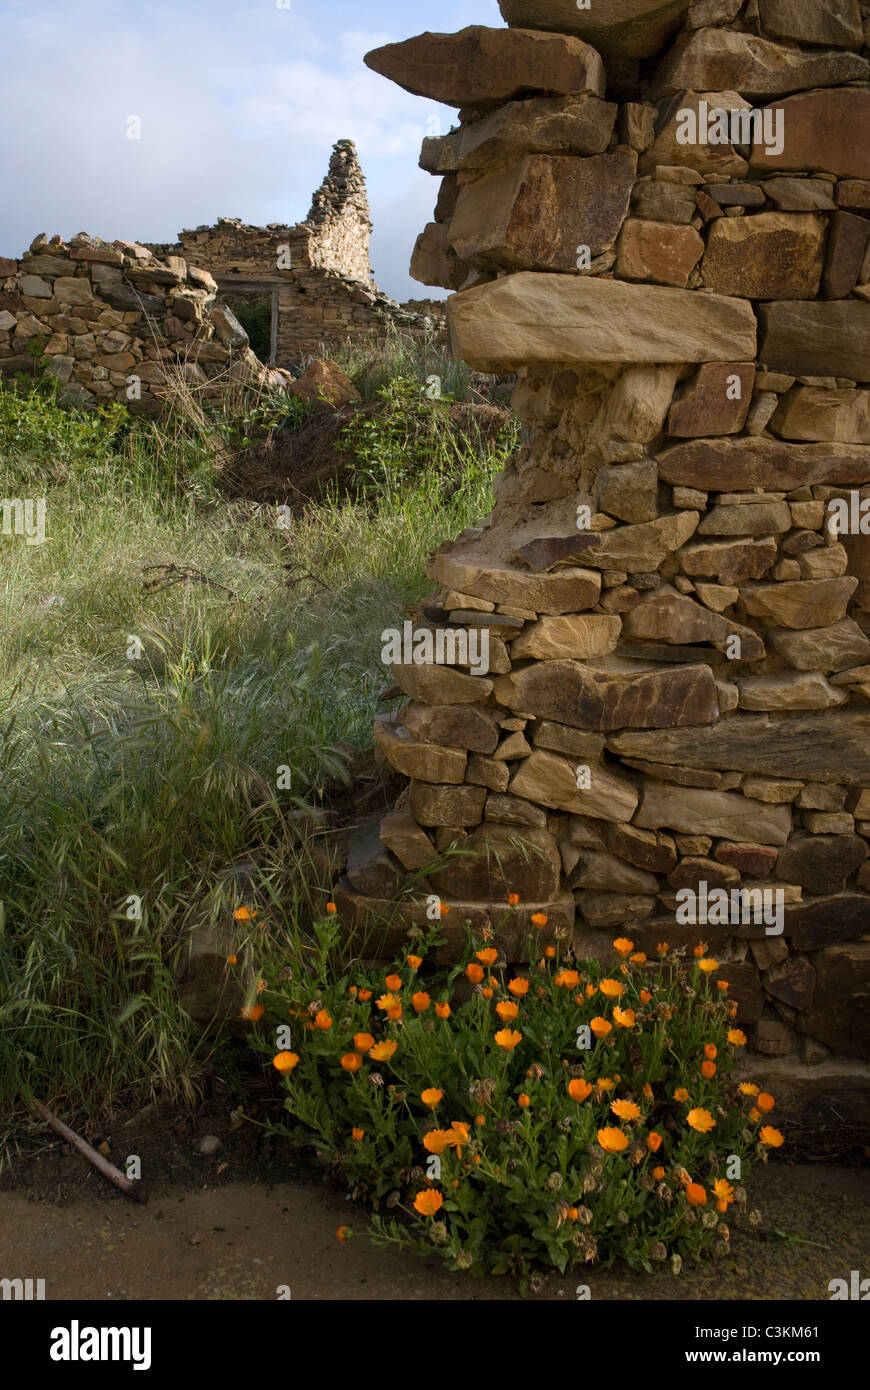 Rustic dry stone wall on the pilgrimage route, Camino de Santiago, Northern Spain - Stock Image